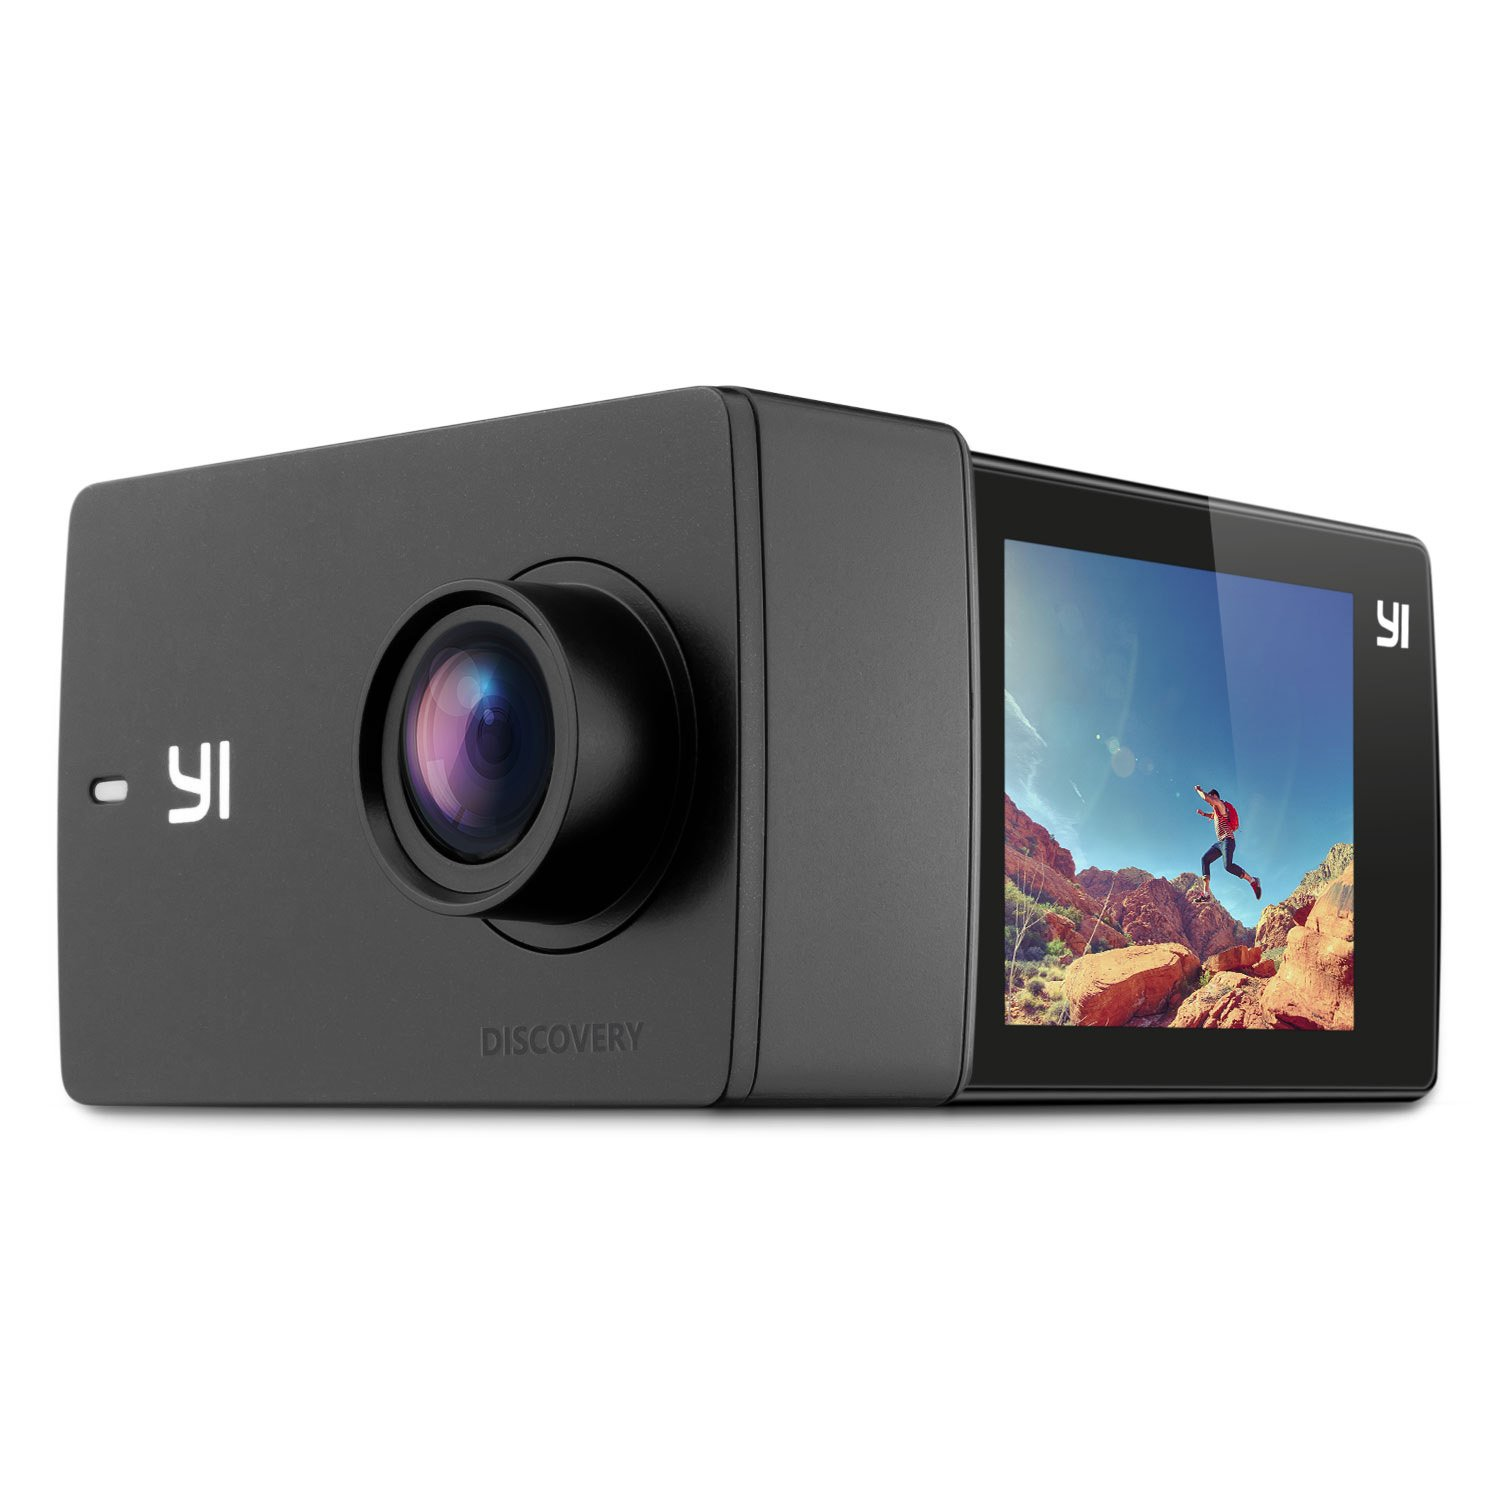 YI Discovery Action Camera, 4K Sports Cam with 2.0'' Touchscreen, Built-in Wi-Fi, 150°Wide Angle, Sony Image Sensor for Underwater, Outdoor Activity by YI